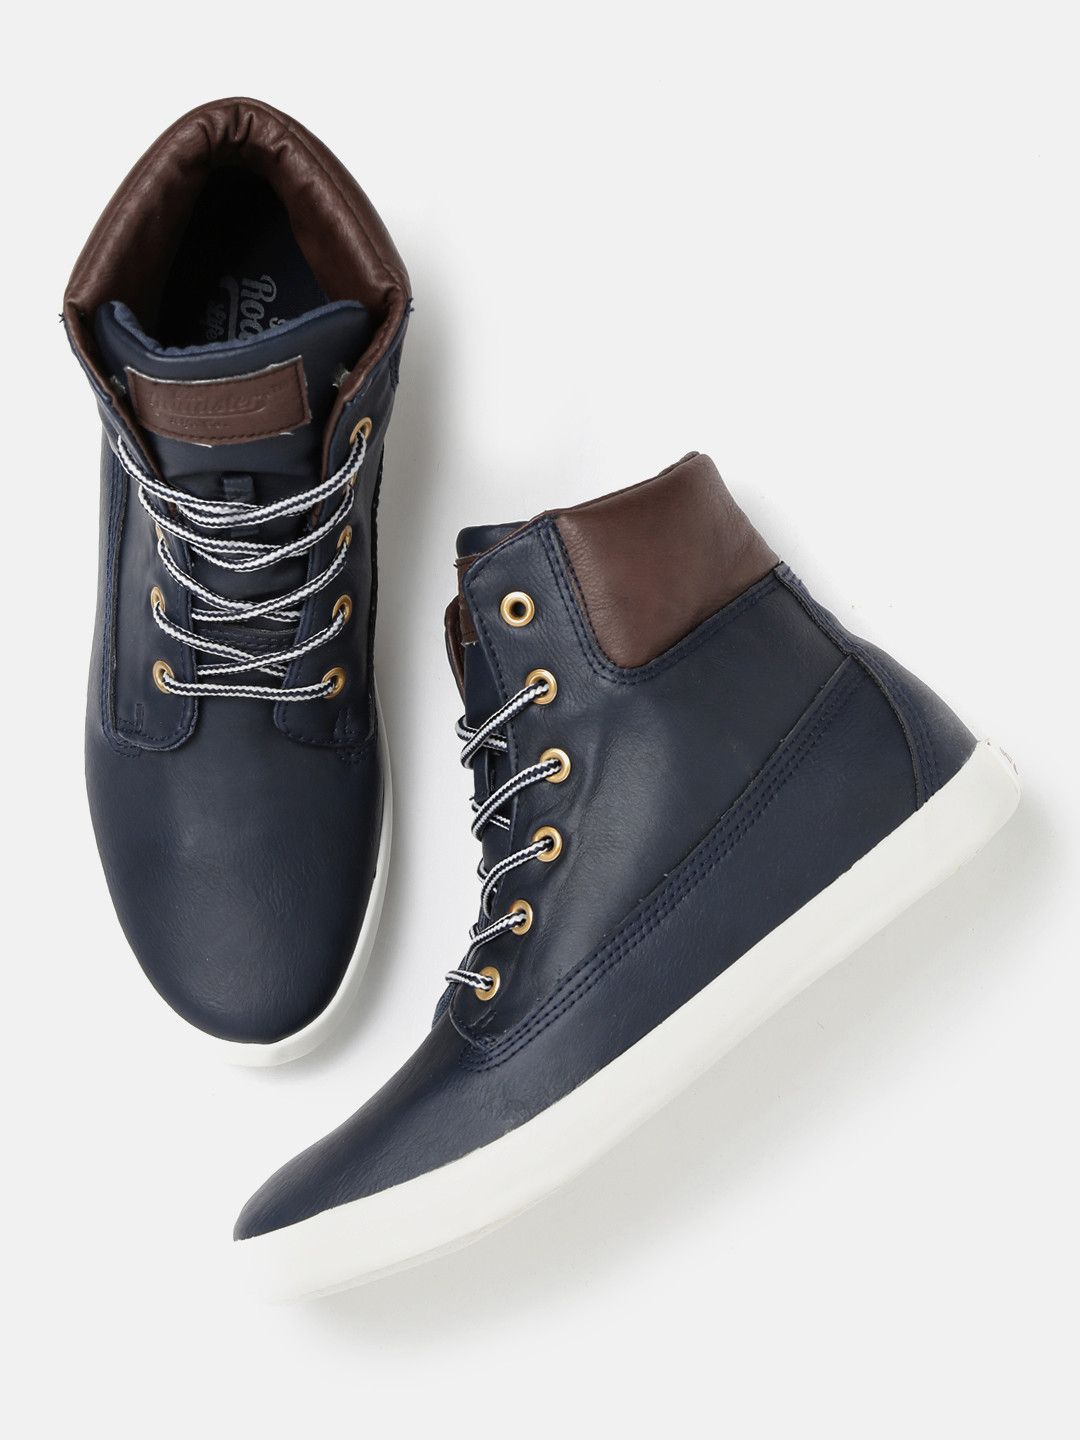 Buy Roadster Navy Blue Solid Sneakers online. Men's FootwearNavy BlueHigh TopsMen's  FashionMen's Casual ShoesGuy ...